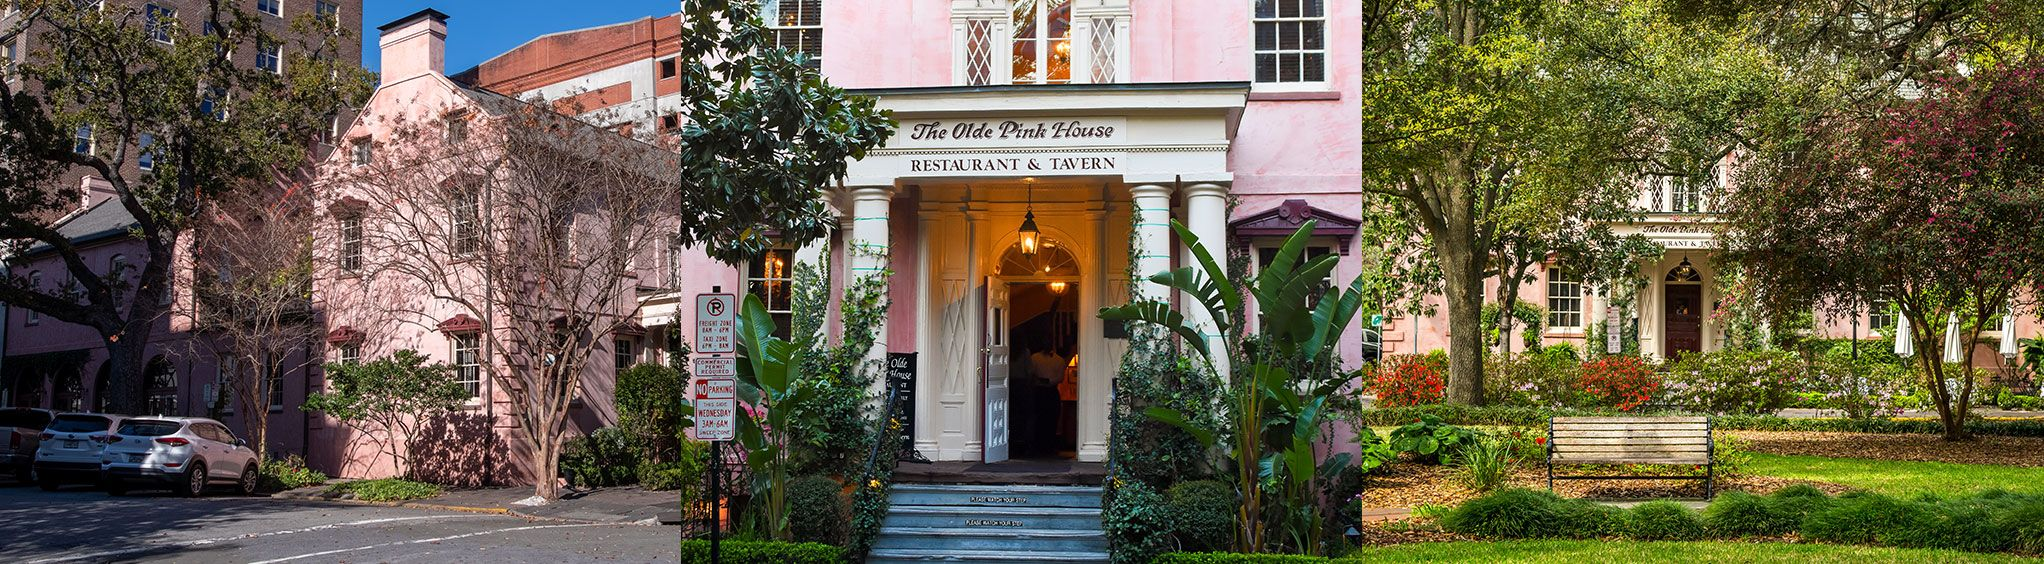 Olde Pink House in Savannah, GA